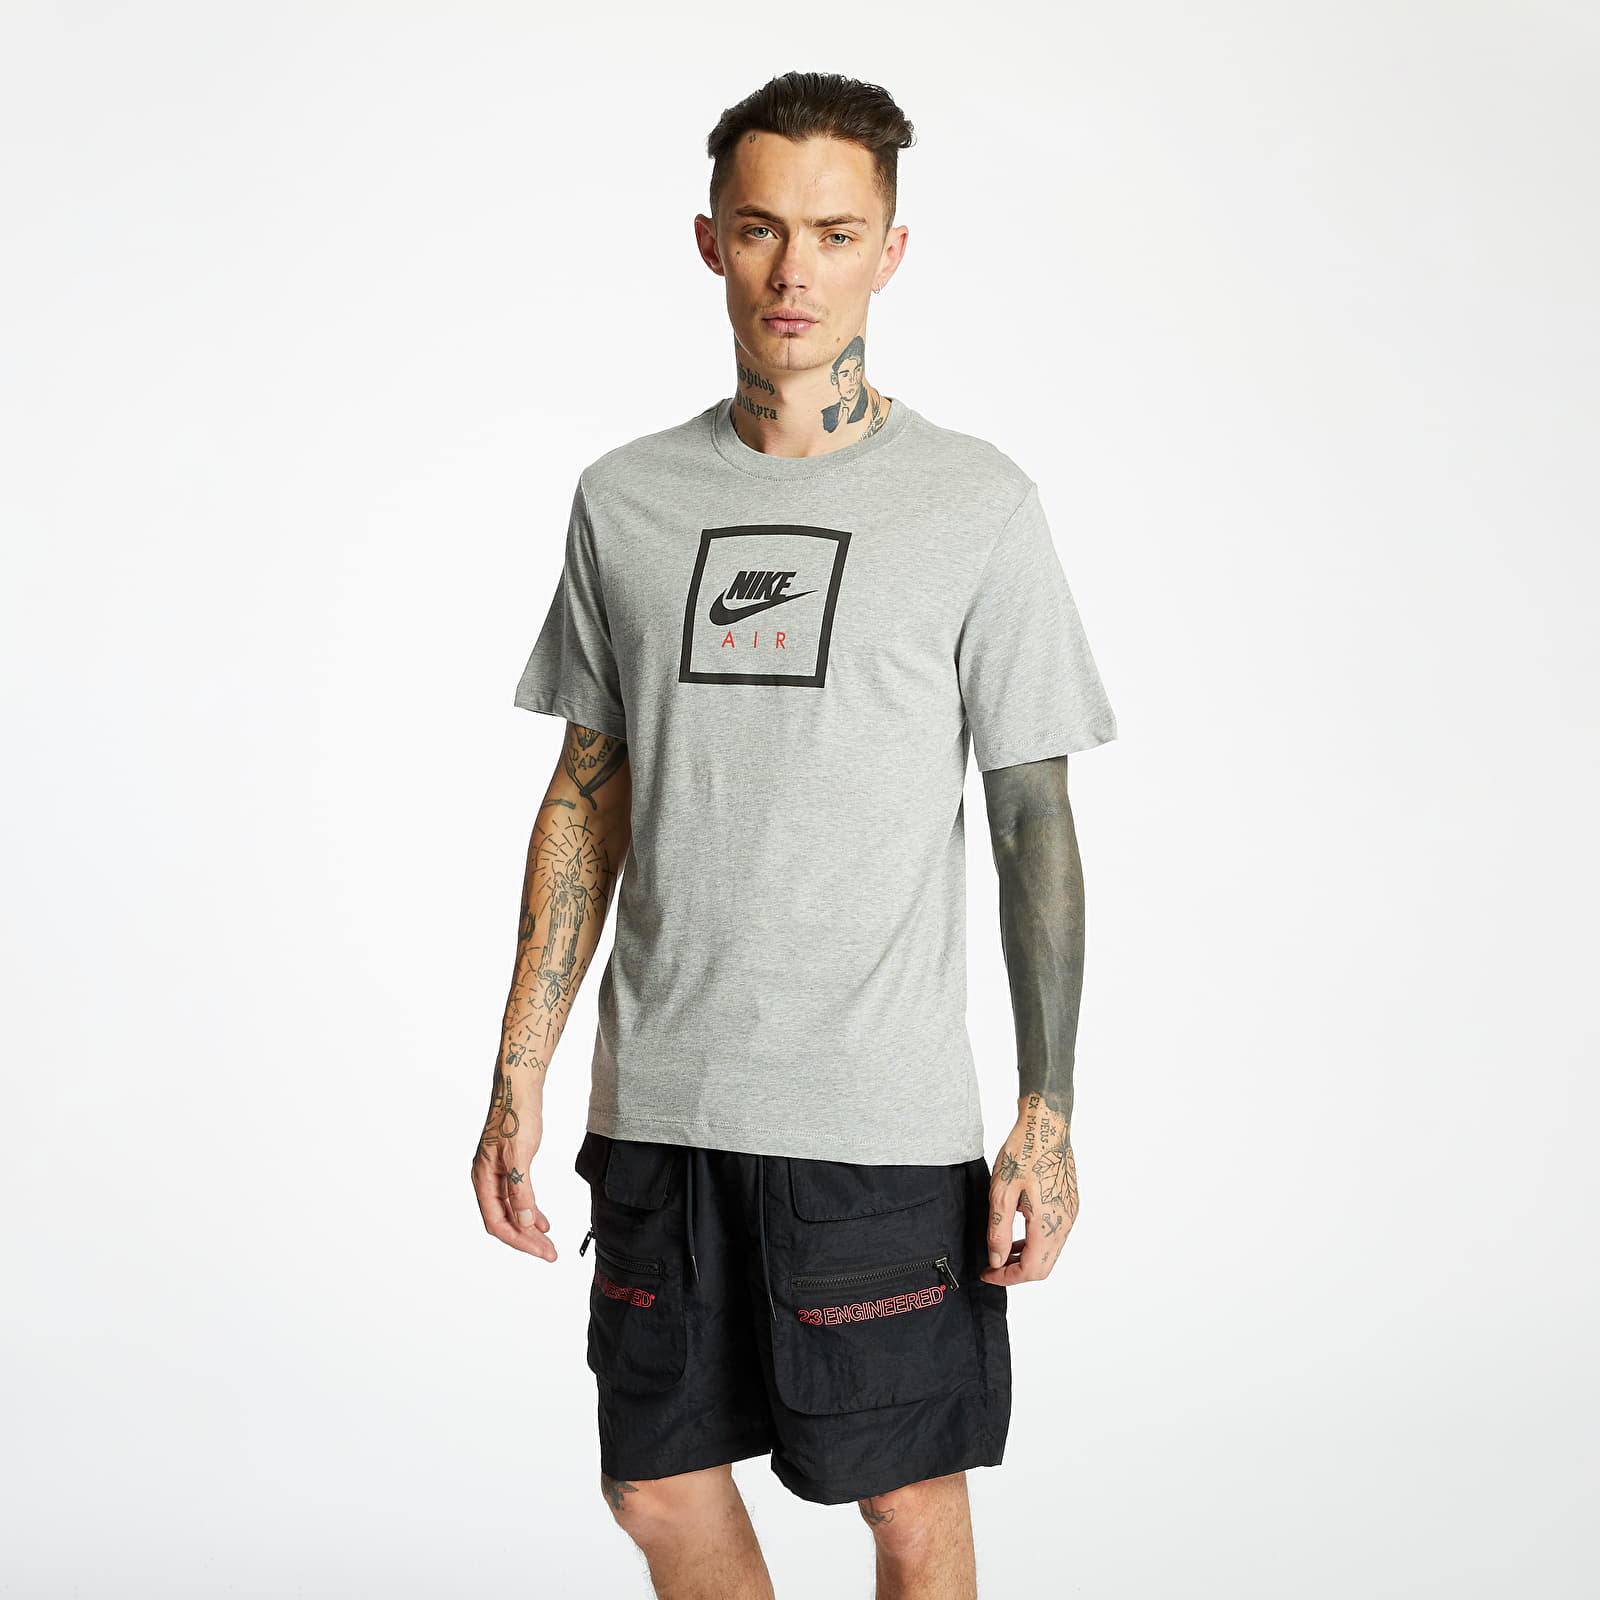 Nike Air 2 Sportwear Tee Grey